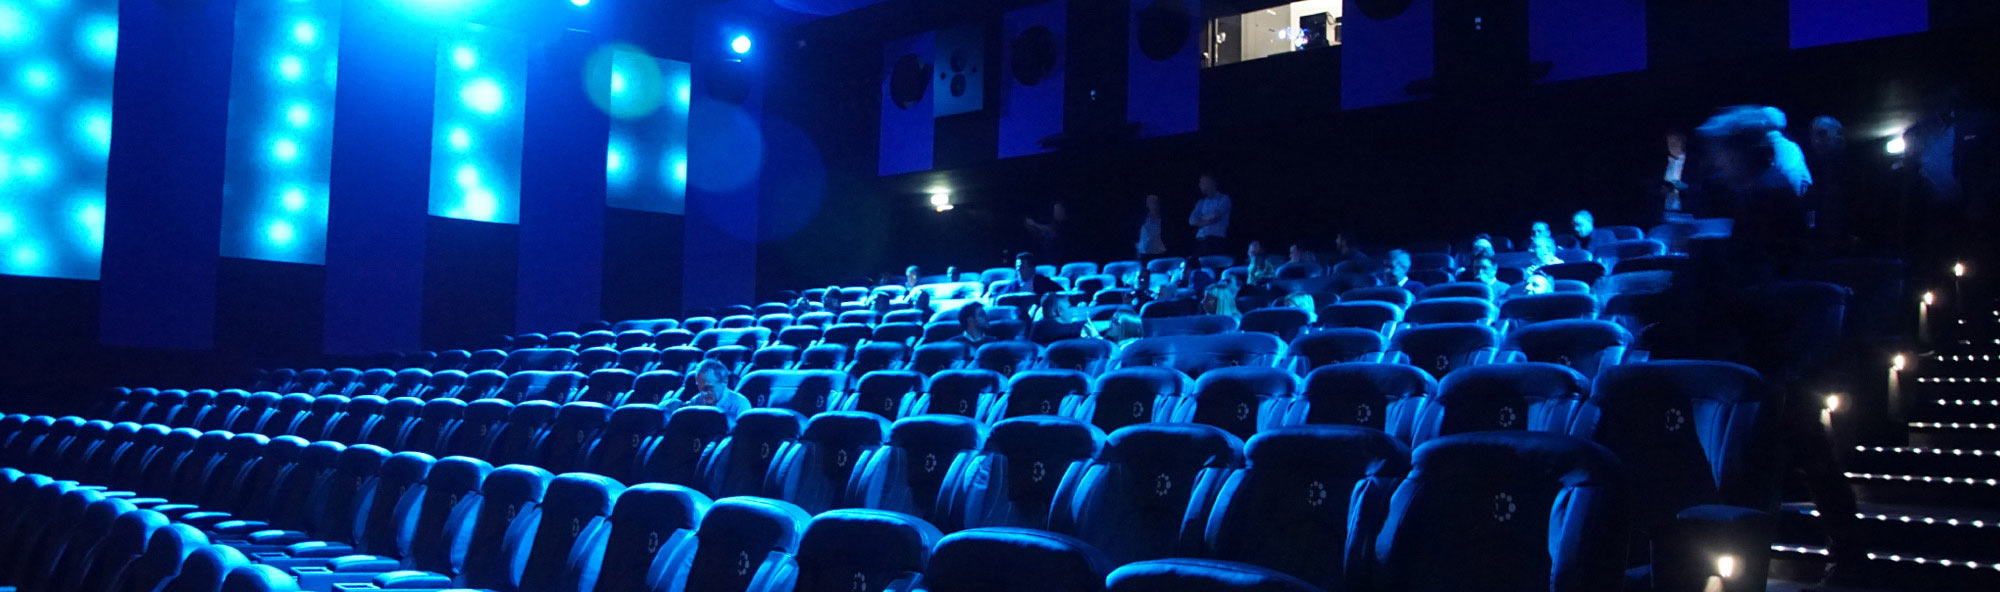 VLS CGR Cinema Image 3 – Photo credits : ©CGR Cinemas